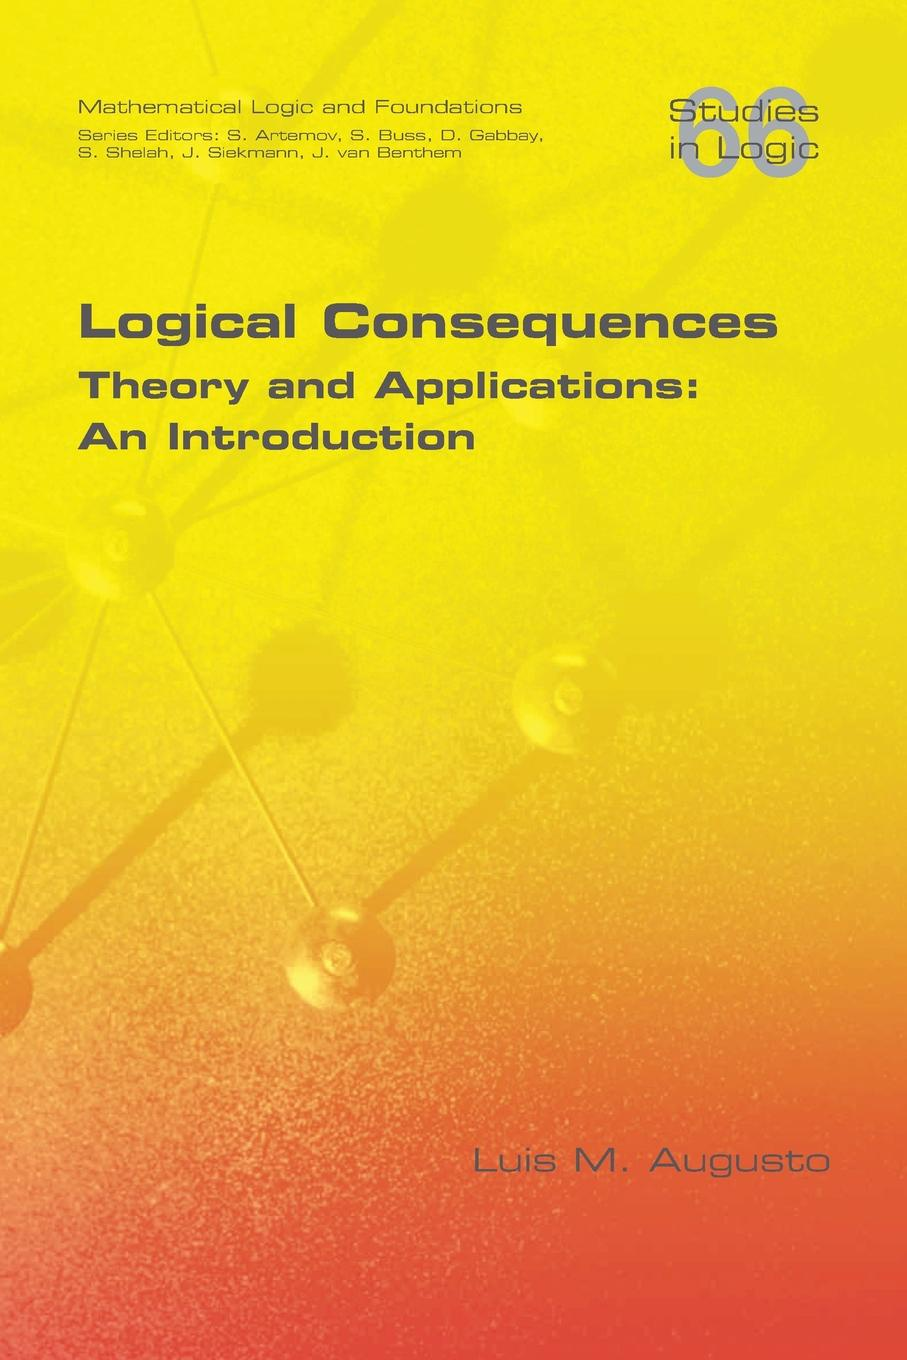 Luis M Augusto Logical Consequences. Theory and Applications: An Introduction asif nabiyev karim jafarli and matanat sultanova the mathematical proof and logical thinking in comprehensive schools